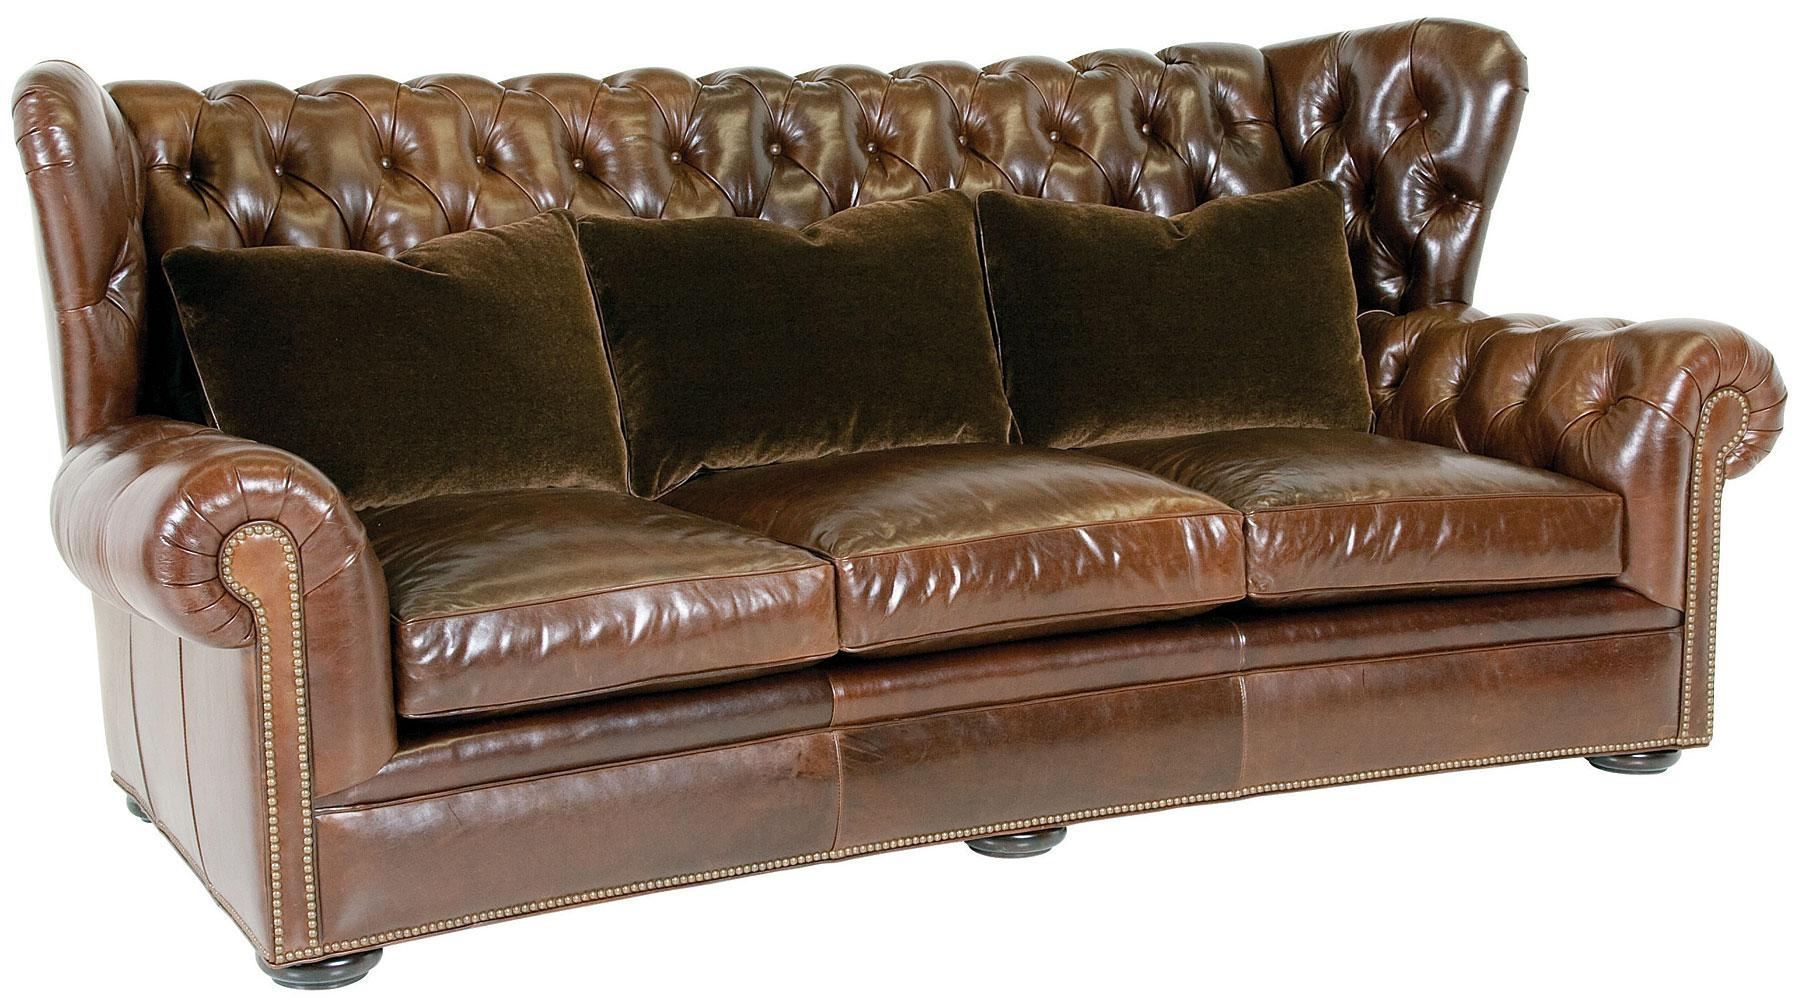 Storage Chesterfield Tufted Leather Sofa Brass Nailhead Trim For Tufted Leather Chesterfield Sofas (Image 19 of 20)